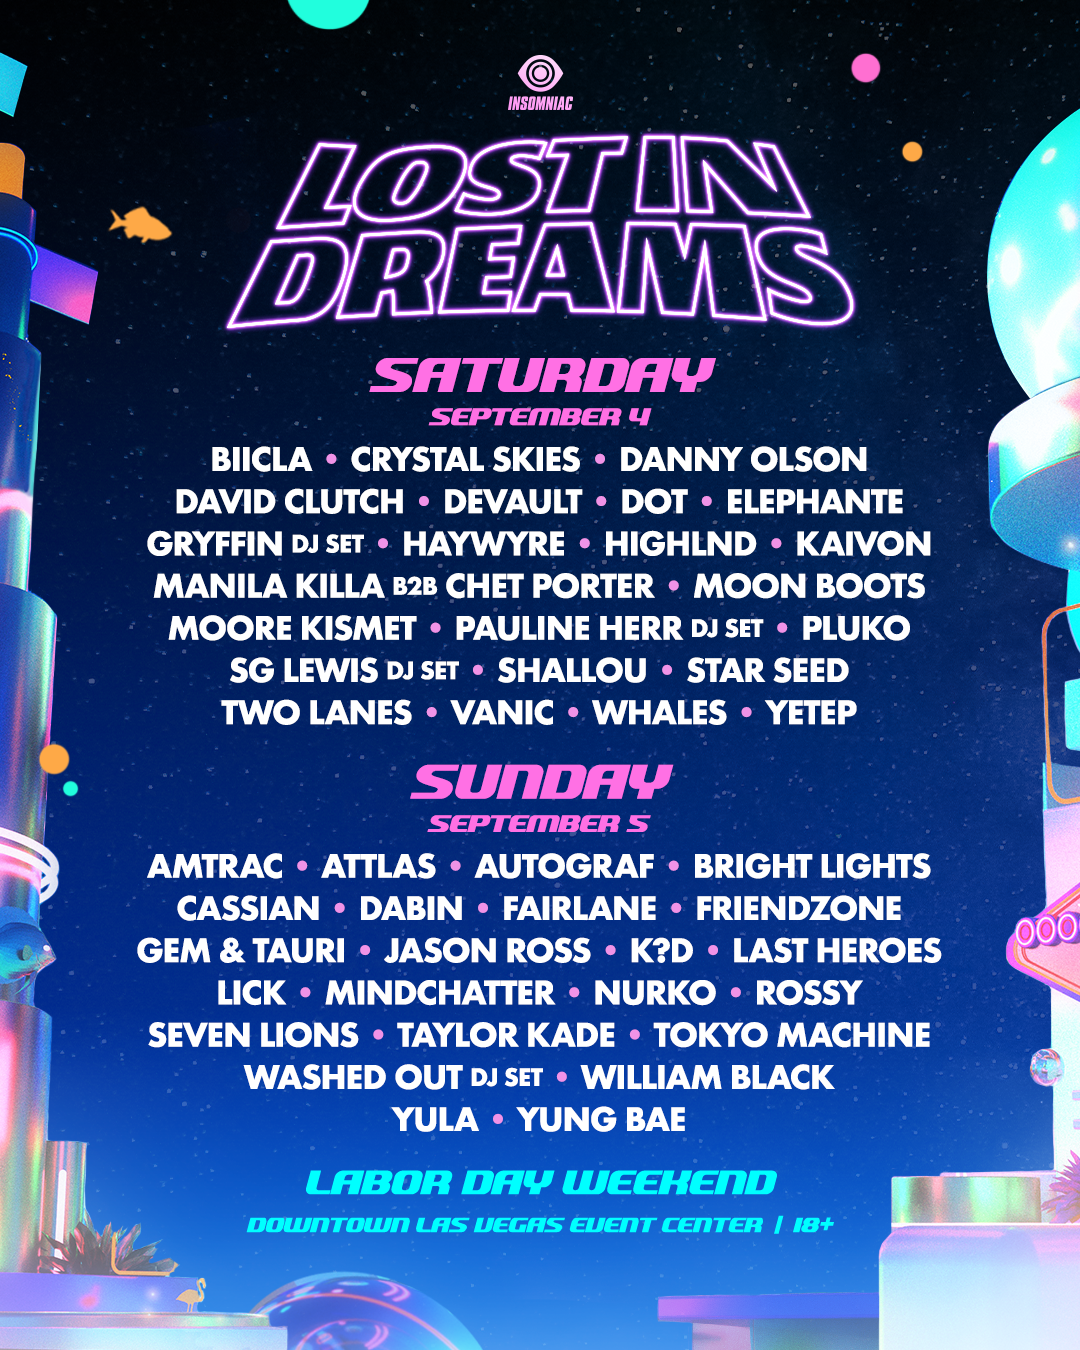 lineup by day